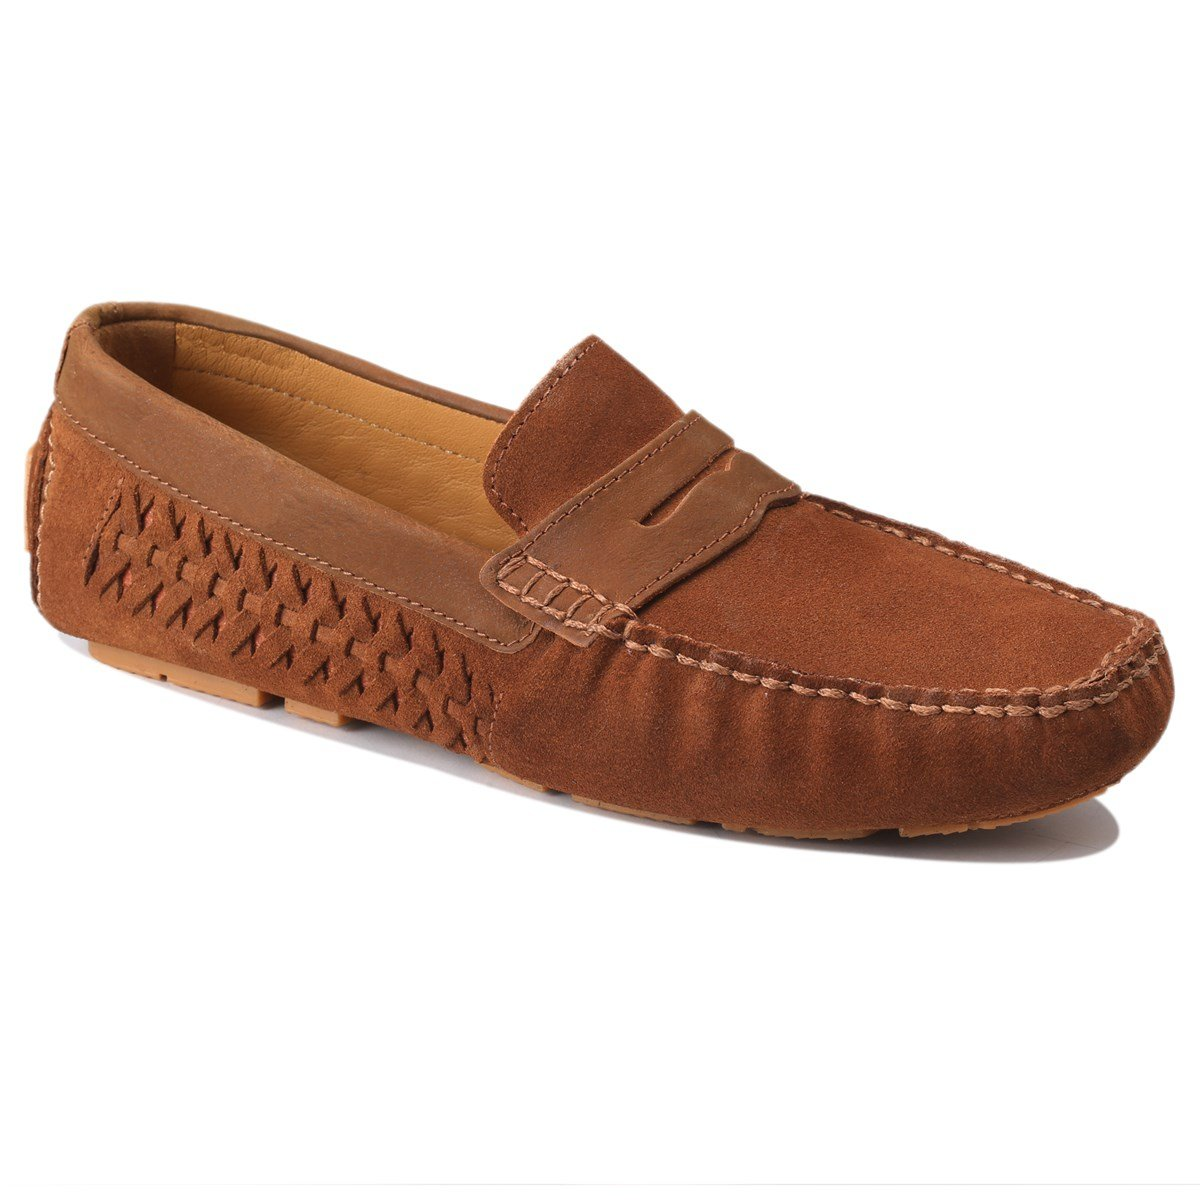 Scottwilliams Amati Premium - Mocasines para Hombre P40|Caramelo